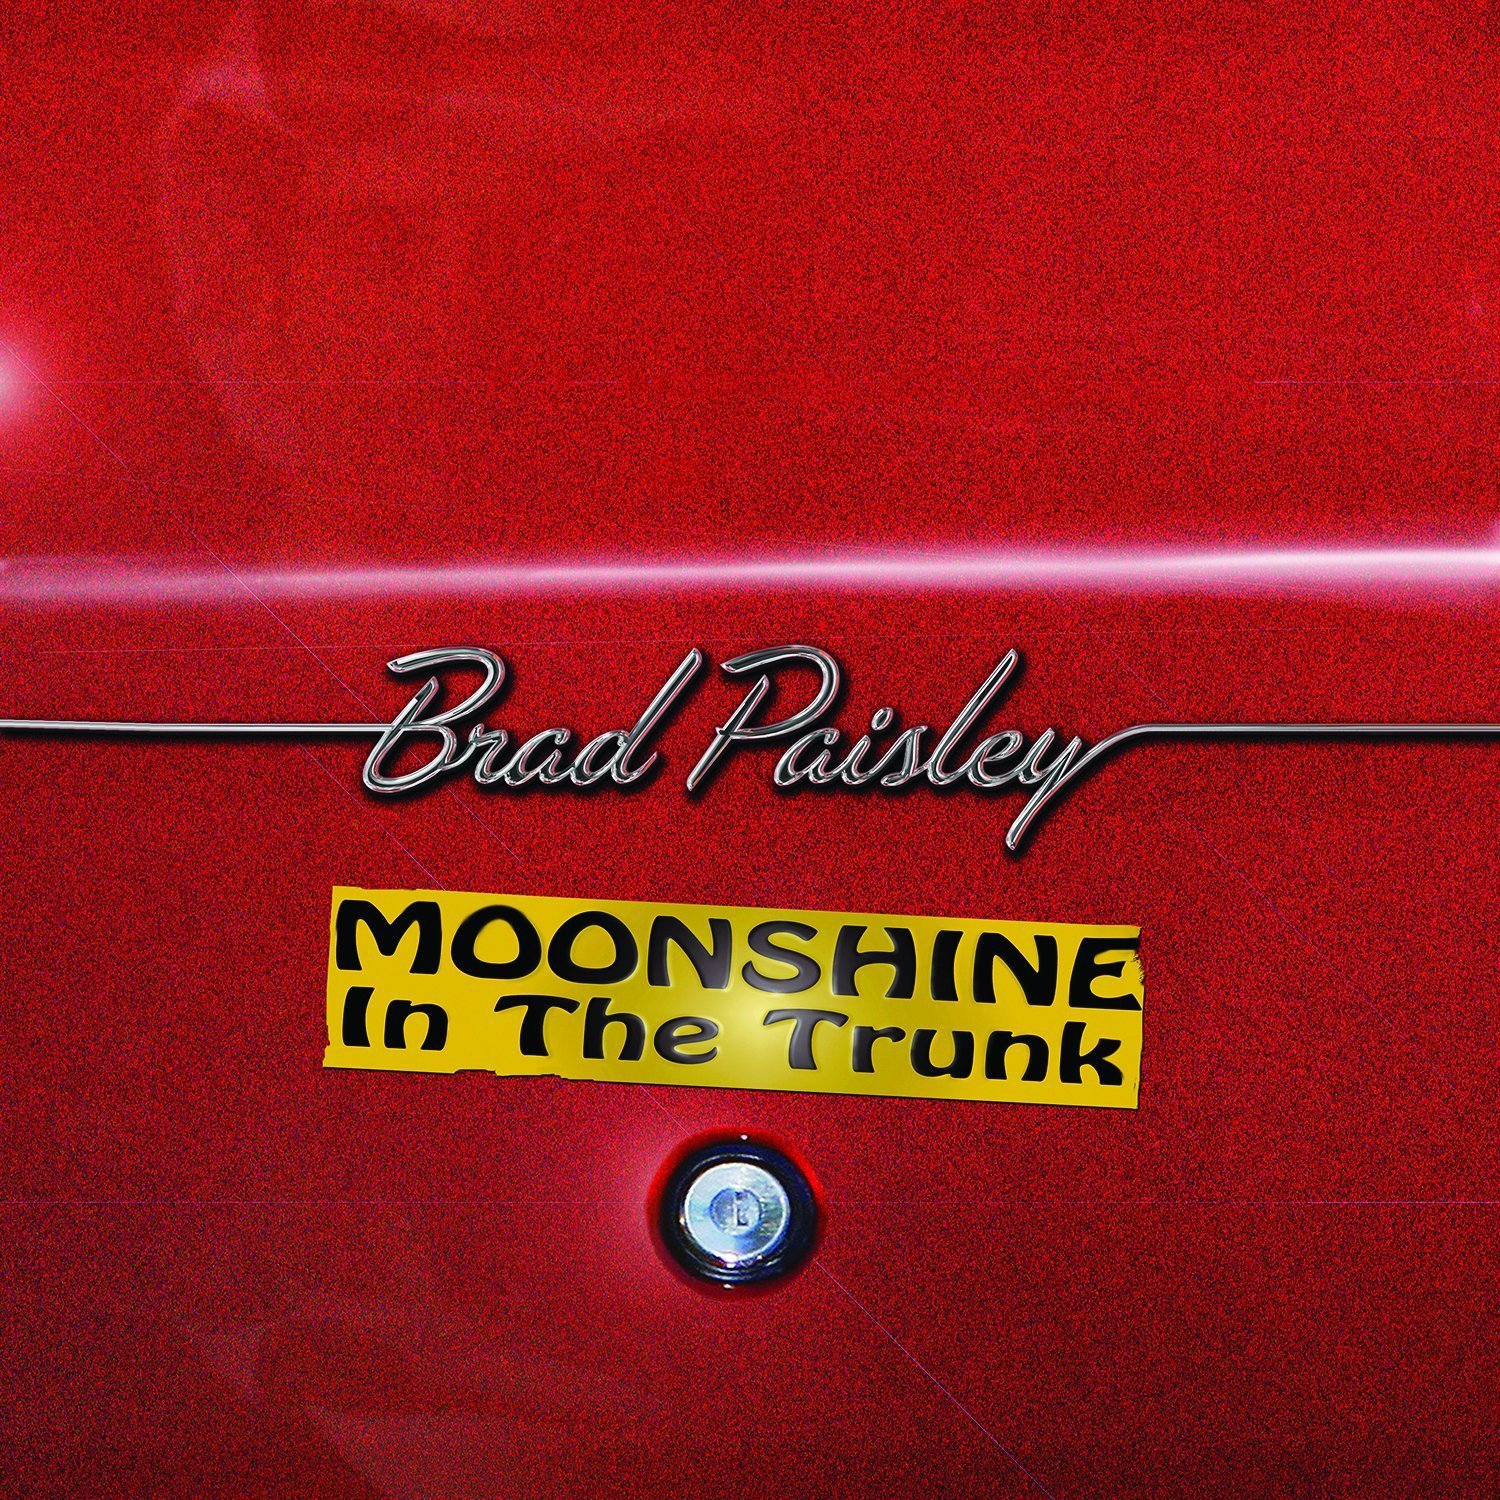 Brad Paisley, Moonshine in the Trunk